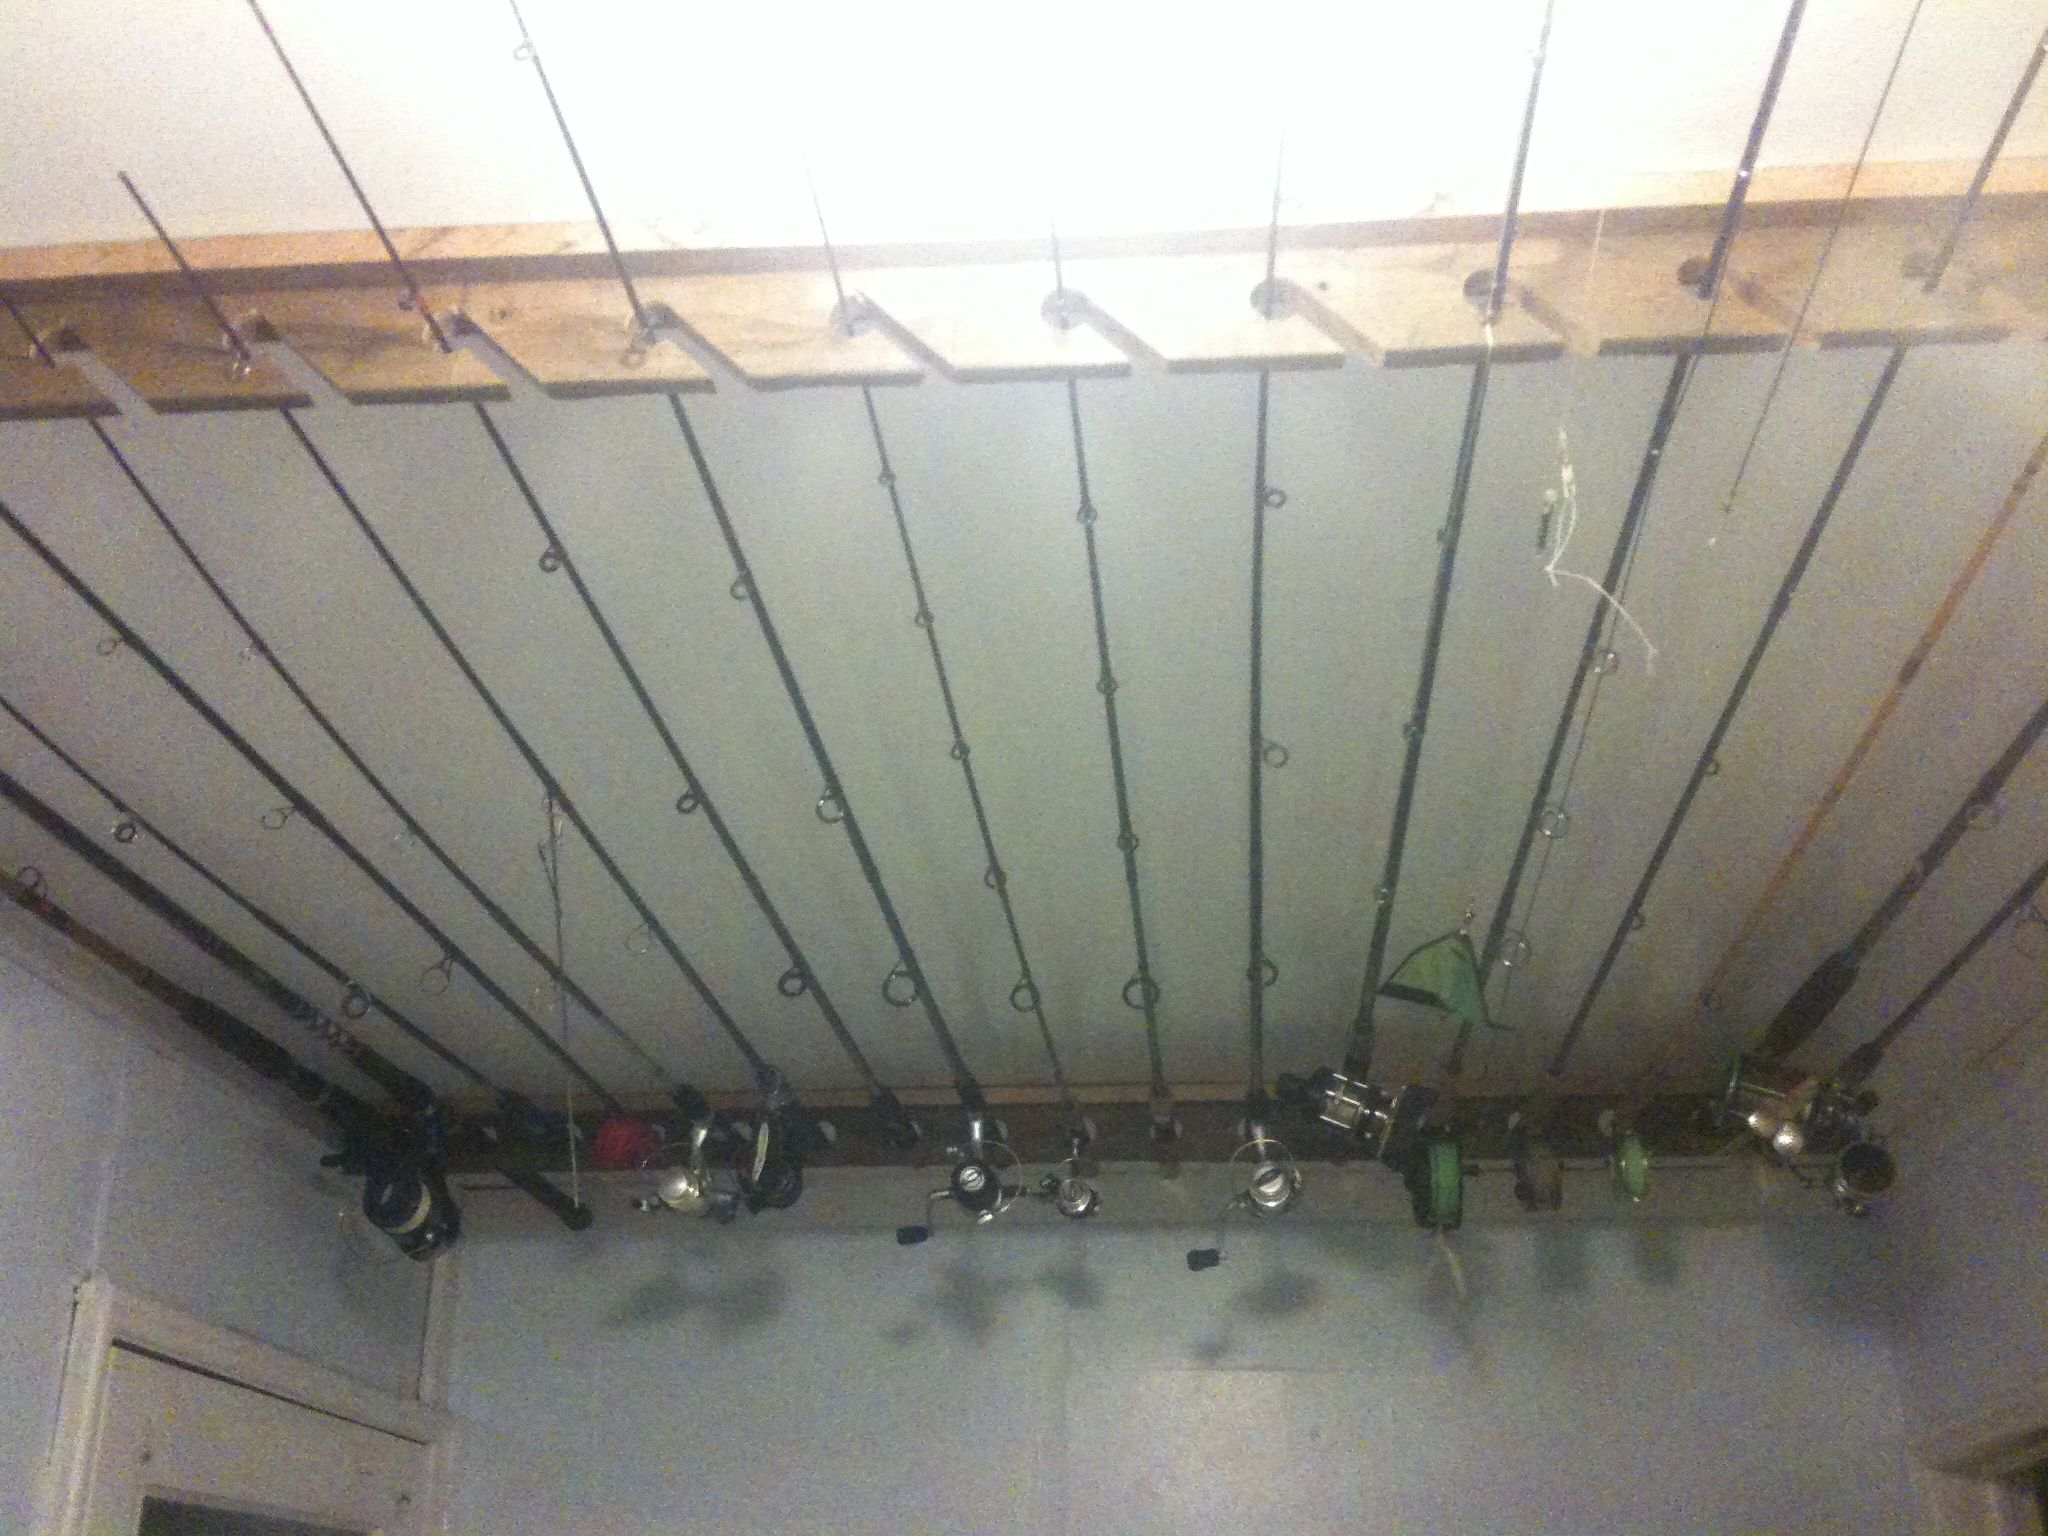 My Dad Made These Ceiling Mount Fishing Rod Racks For Me